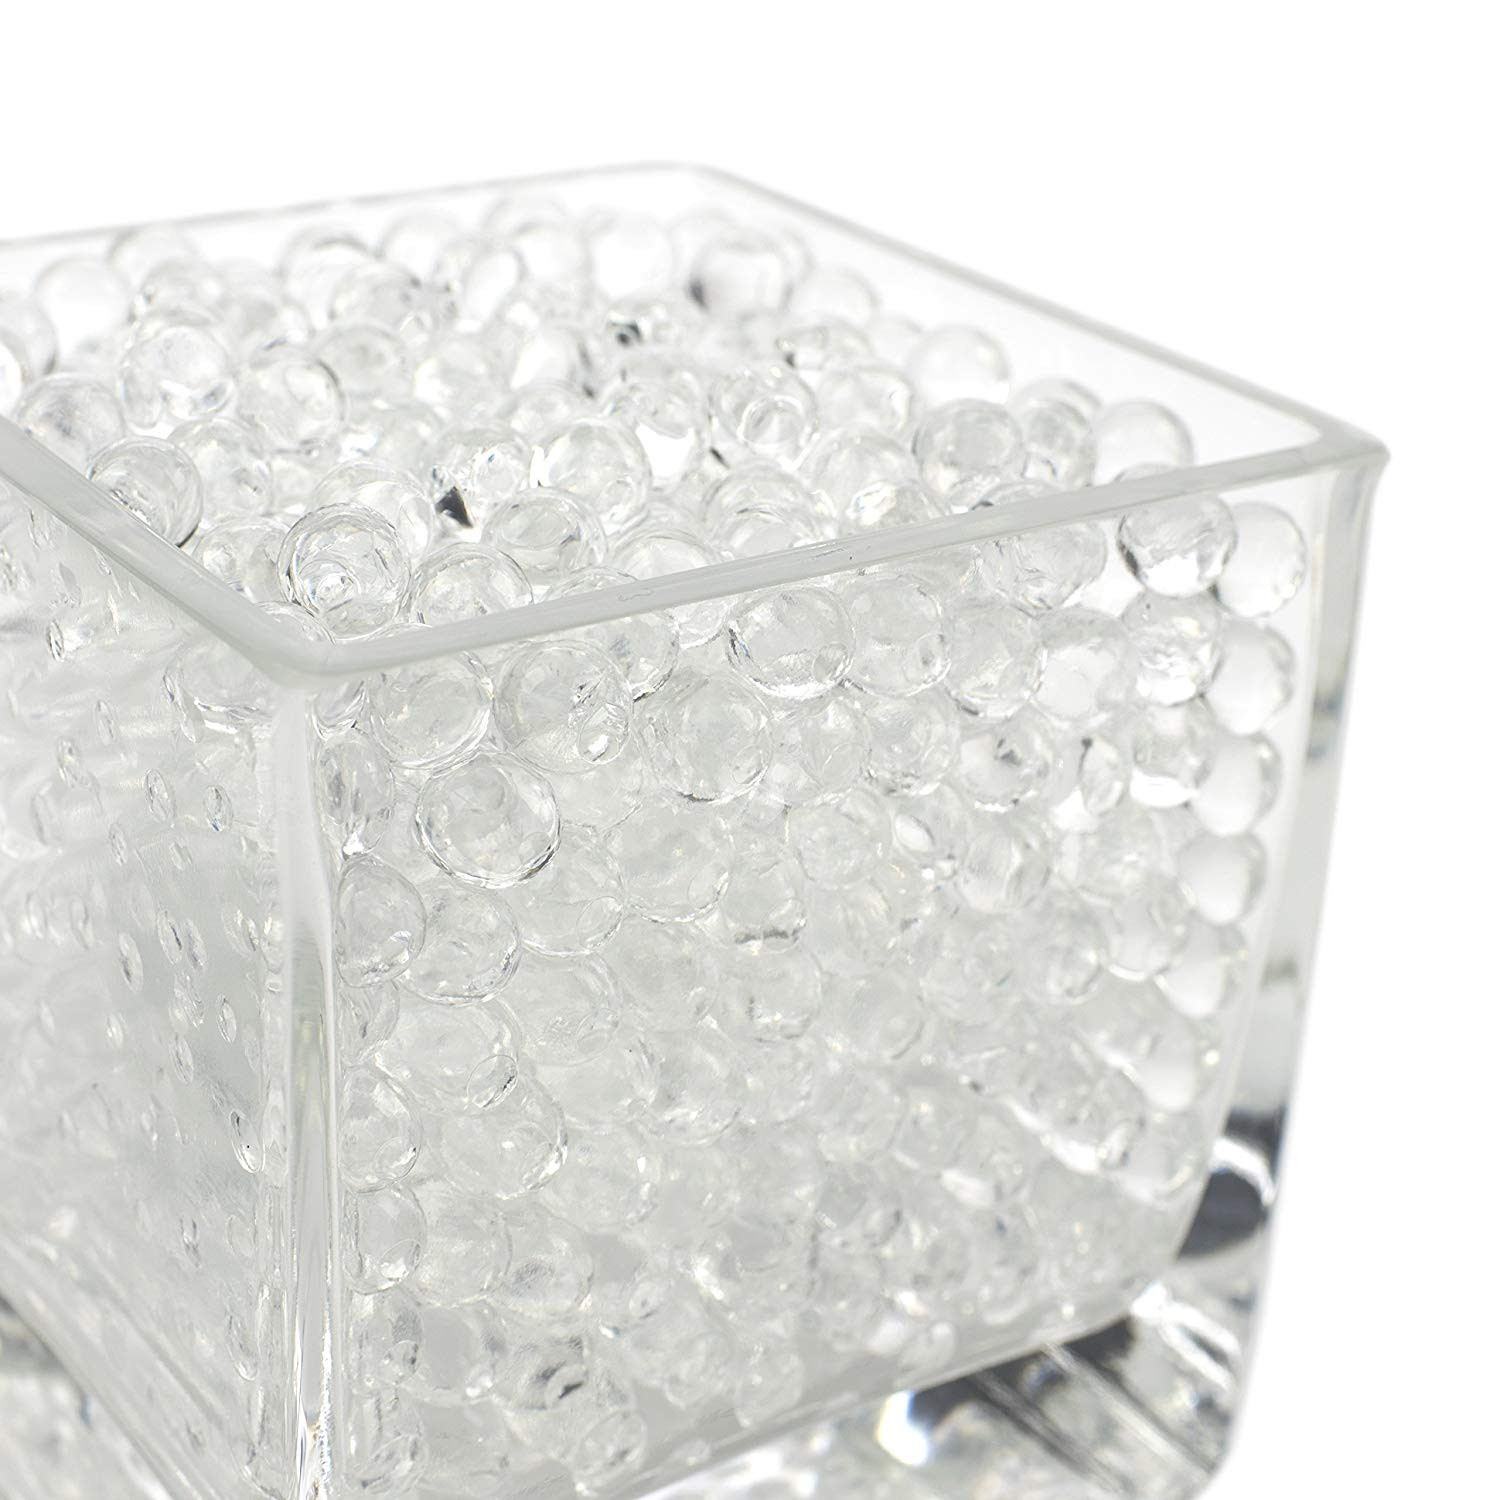 clear plastic beads for vases of amazon com magic beadz clear jelly water beads transparent gel regarding amazon com magic beadz clear jelly water beads transparent gel pearls vase filler wedding centerpiece candles flower arrangements over 20000